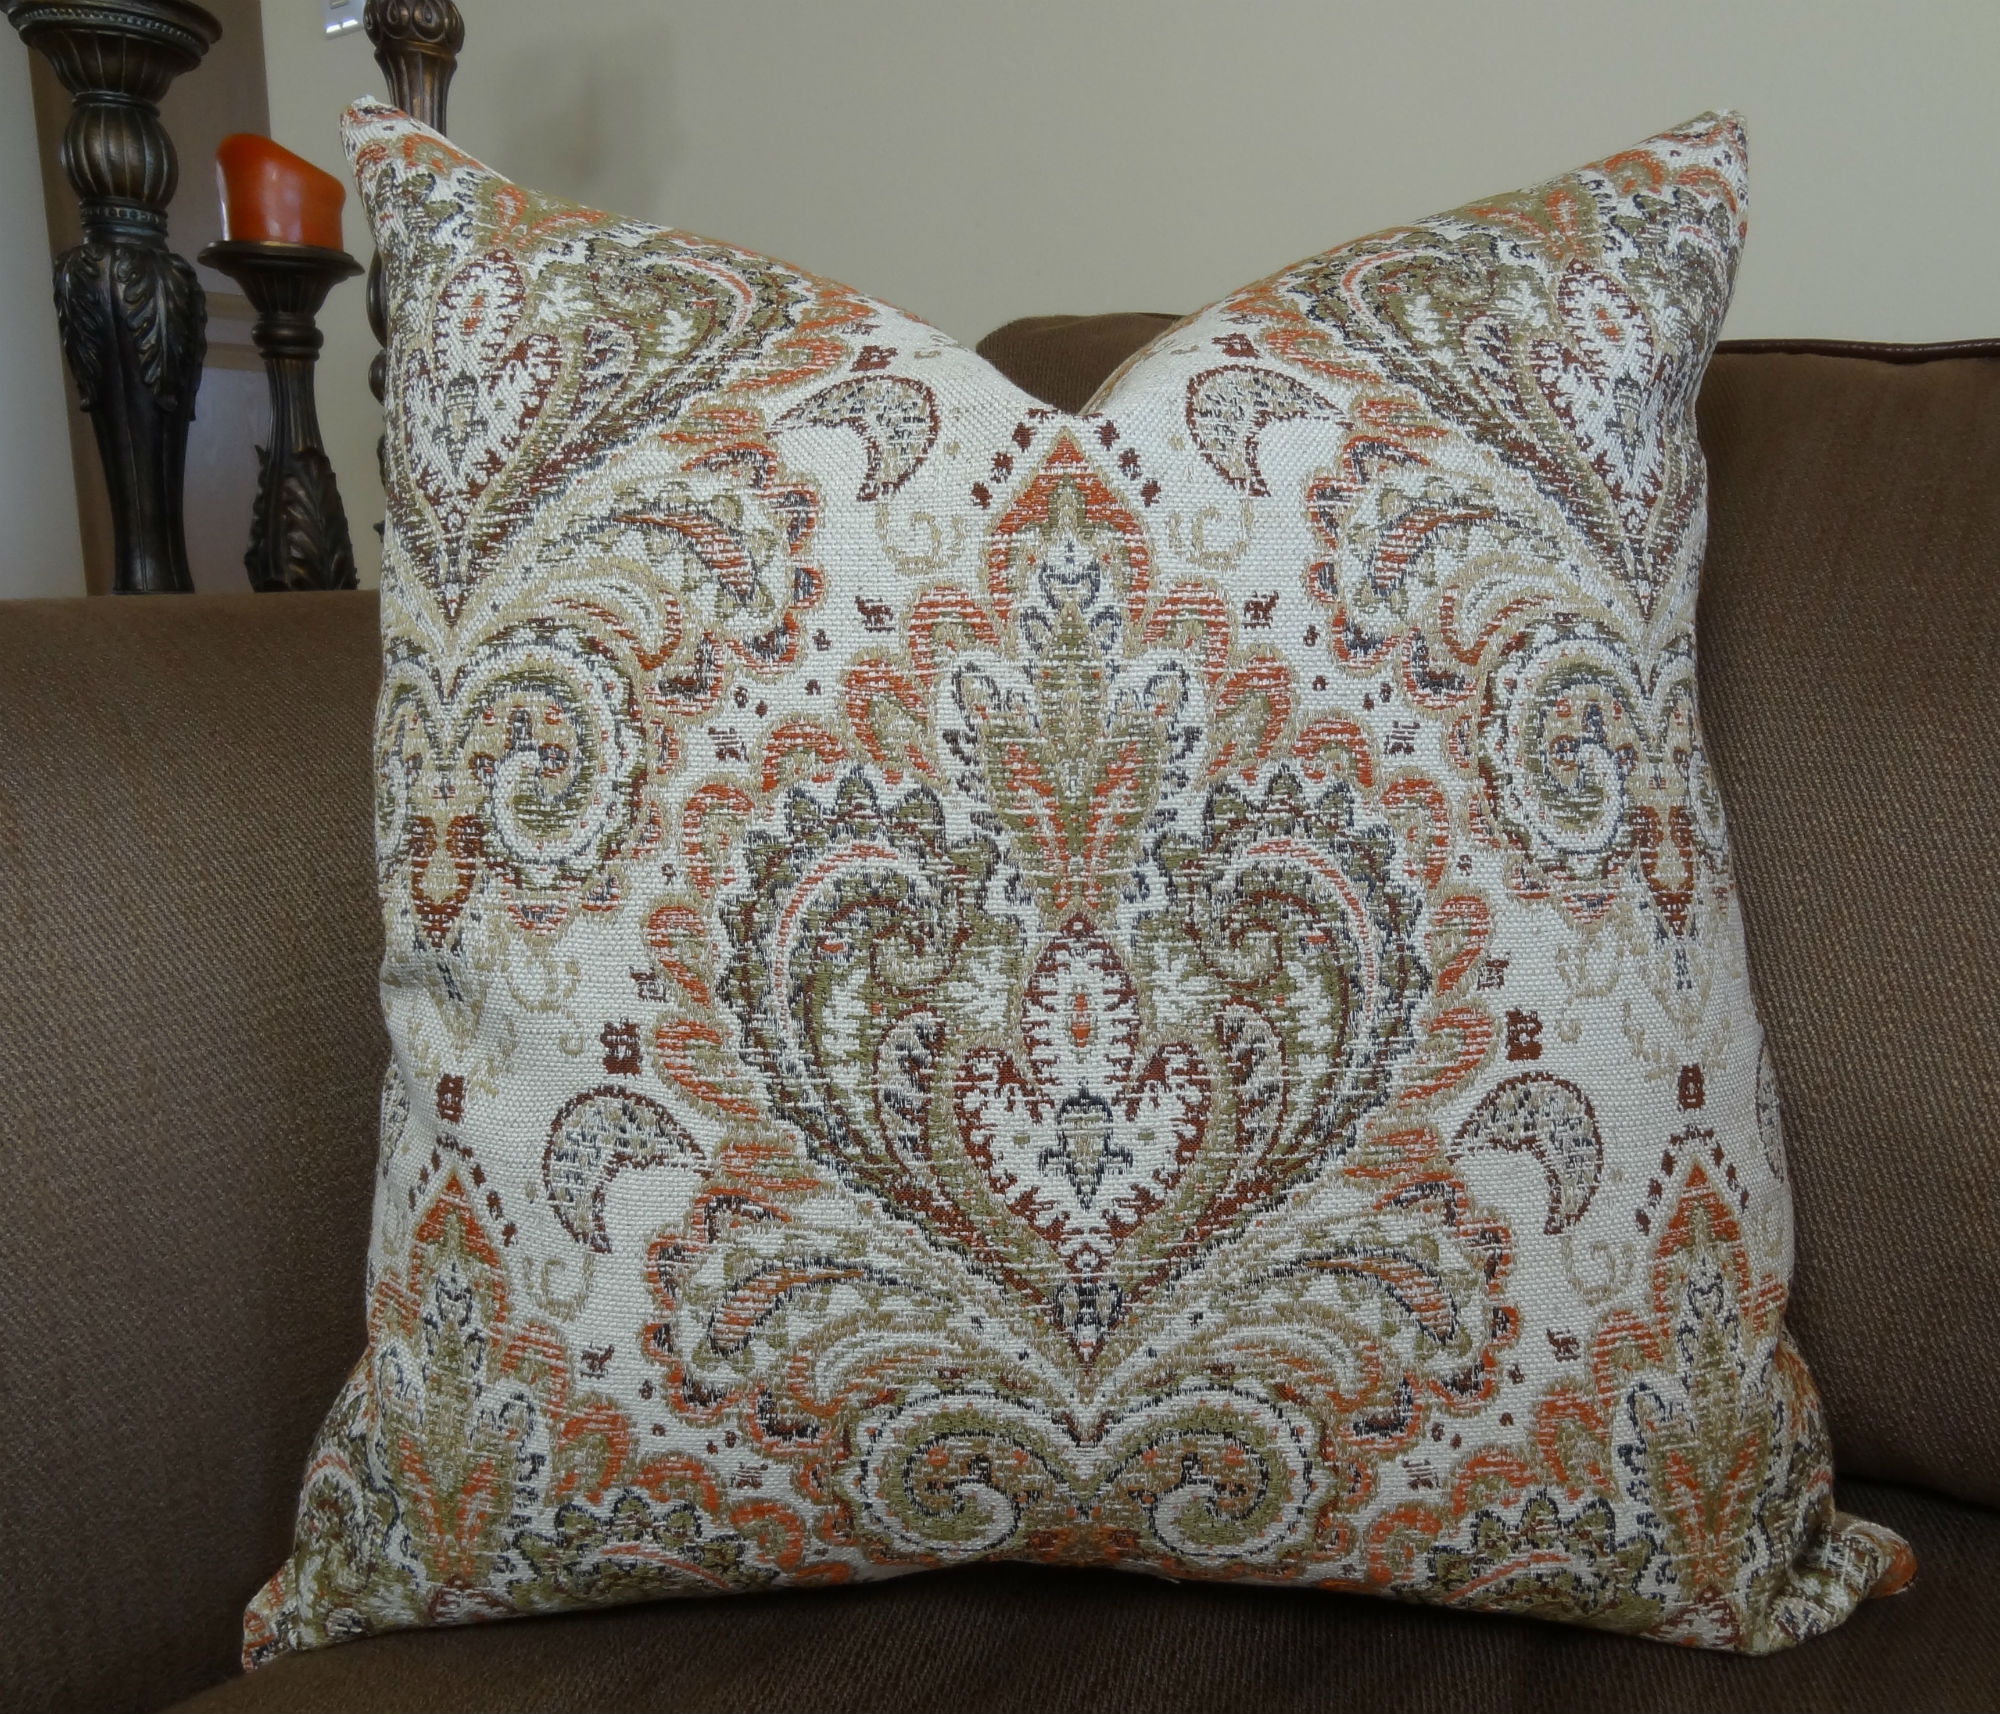 18 Quot X 18 Quot Luxury Decorative Throw Pillow Cream Tan Brown